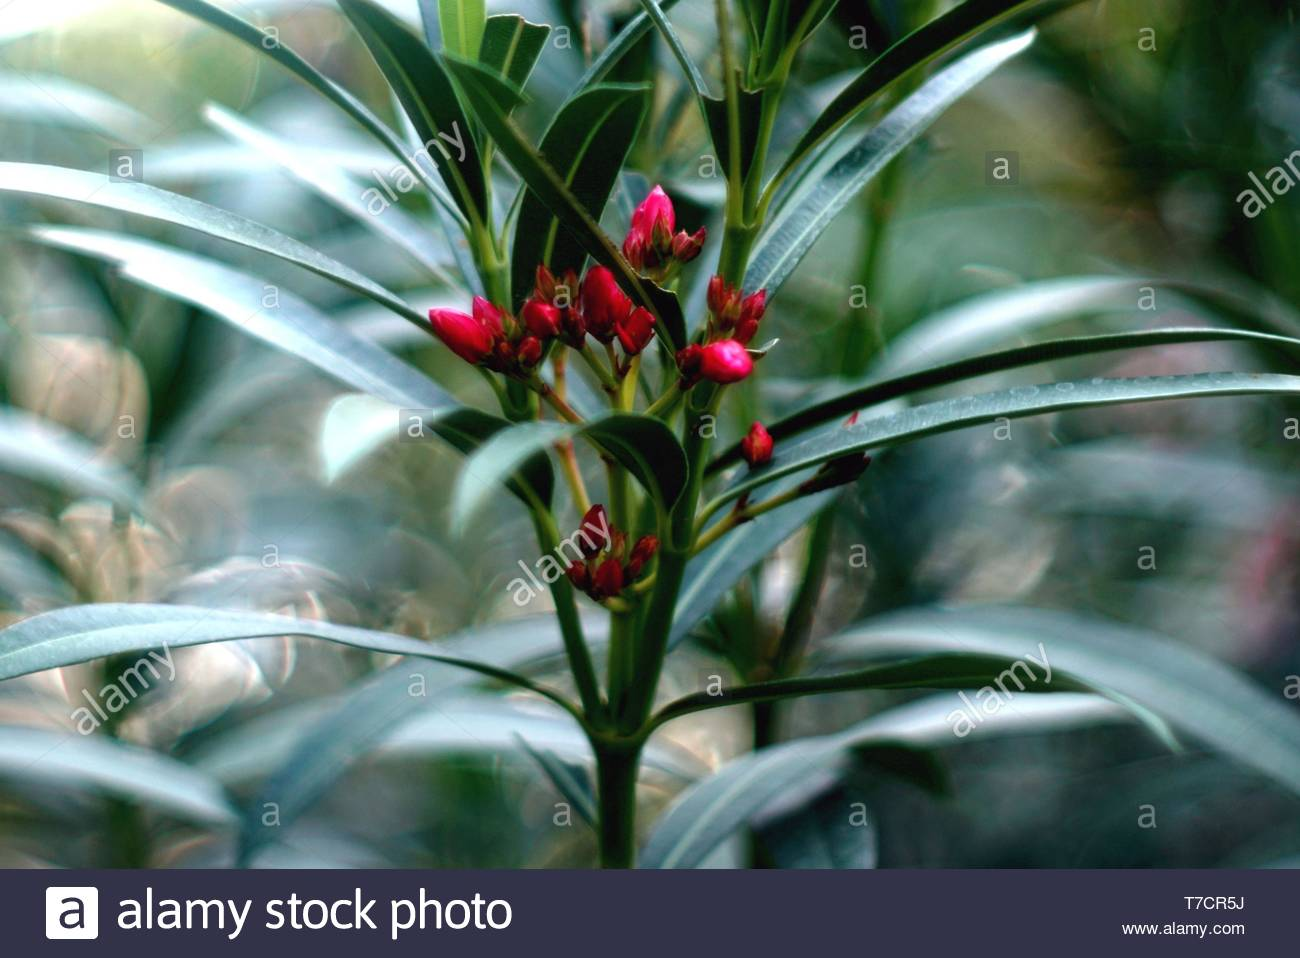 A red flower was begin going to blooming after rained. - Stock Image